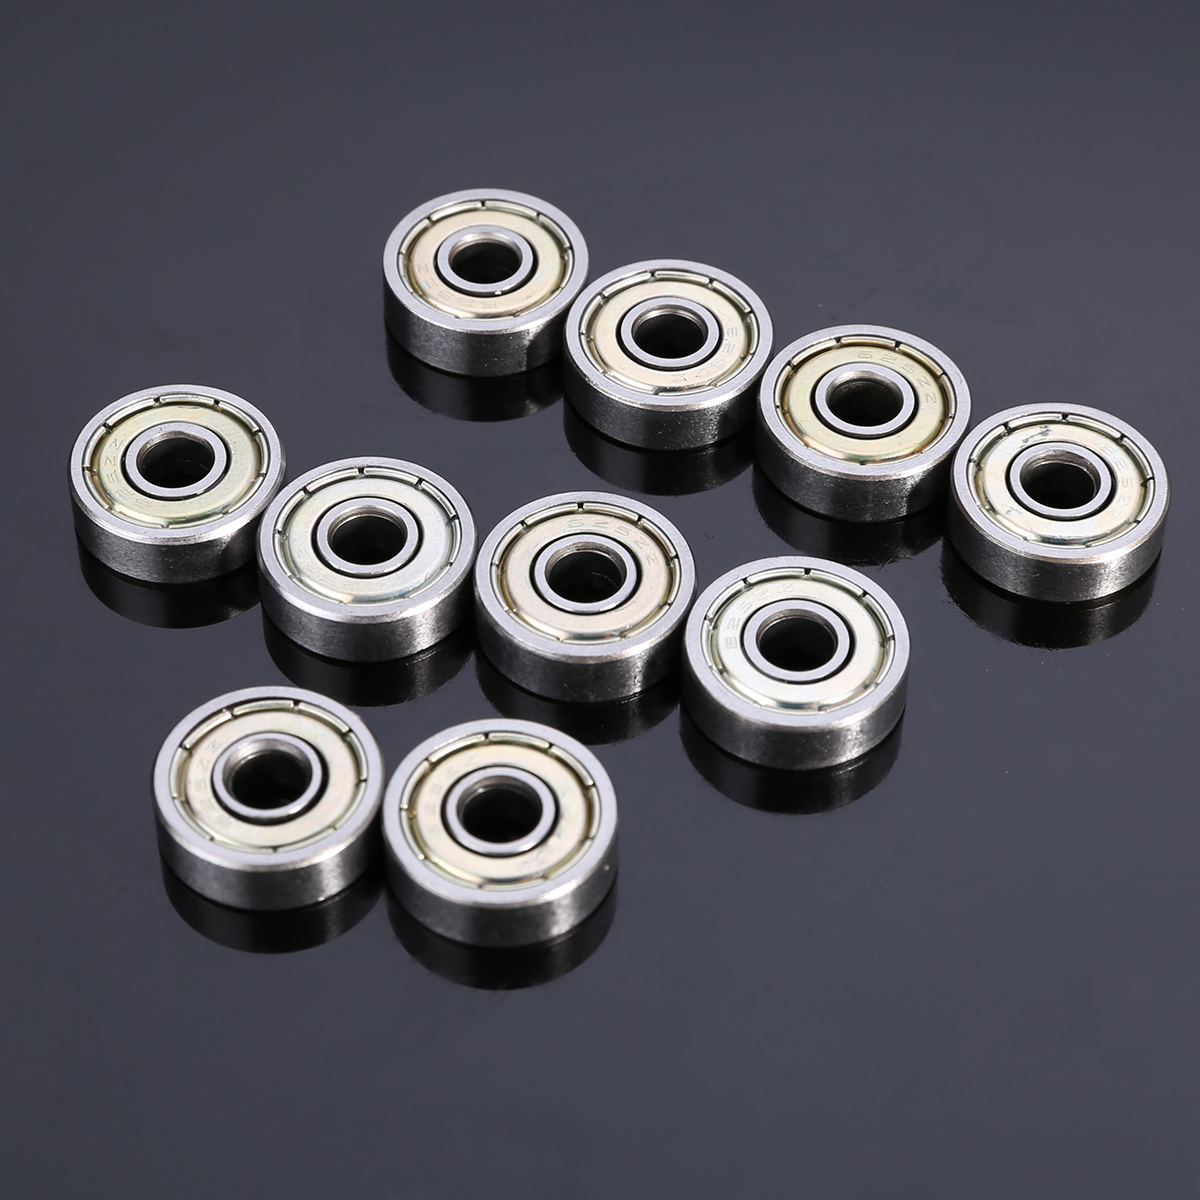 10pcs/Lot Reliable 625ZZ Ball Bearings Carbon Steel Single Row Deep Groove Radial Ball Bearing 5*16*5mm With Grease Mayitr 10pcs small wear 608zz ball bearing mayitr carbon steel precise deep groove bearings for skateboard roller blade scooter